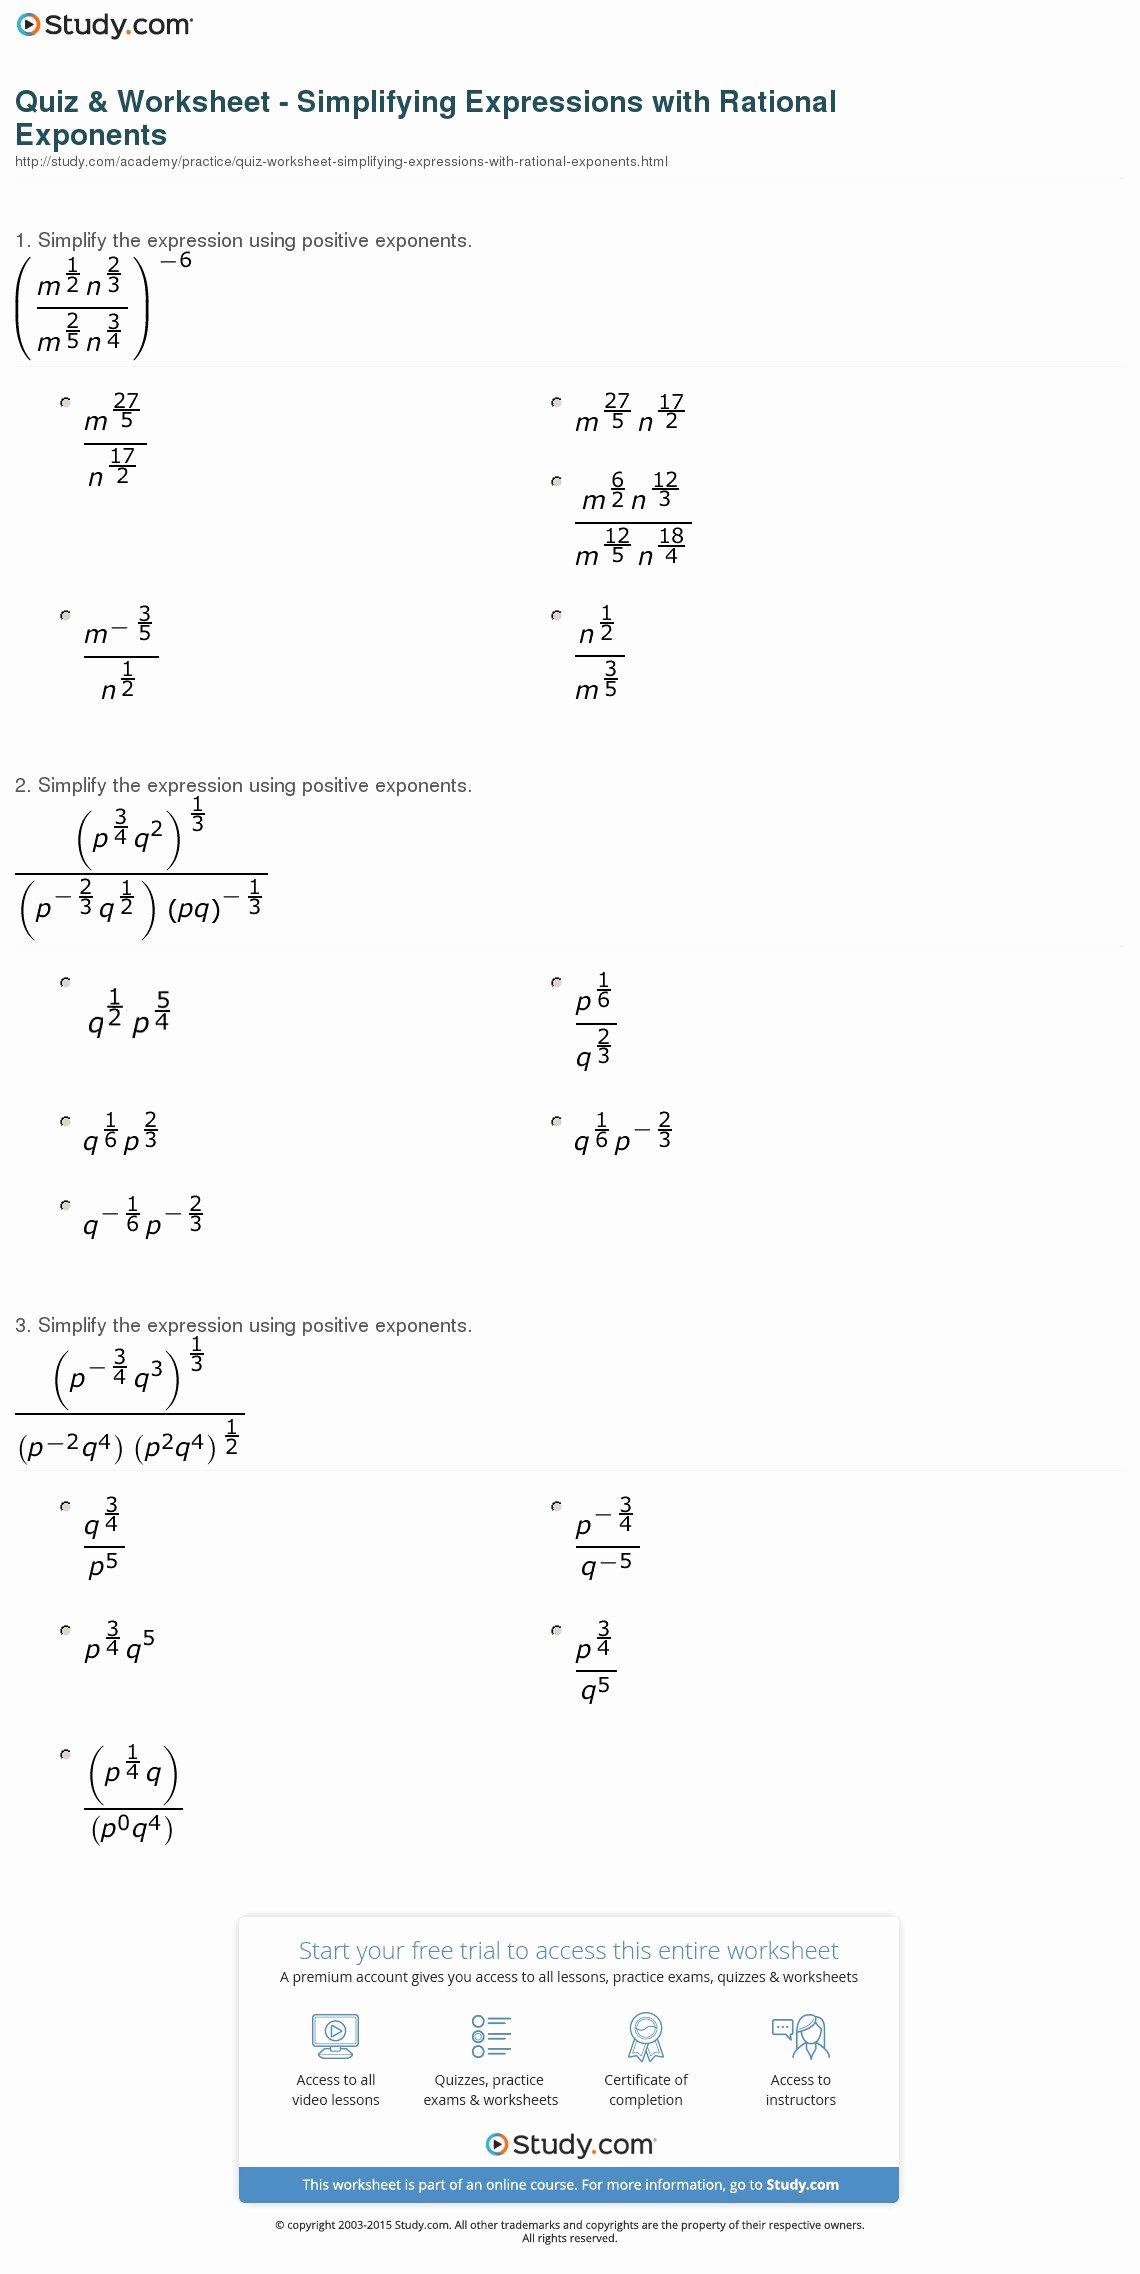 Rational Exponents and Radicals Worksheet Elegant Quiz & Worksheet Simplifying Expressions with Rational